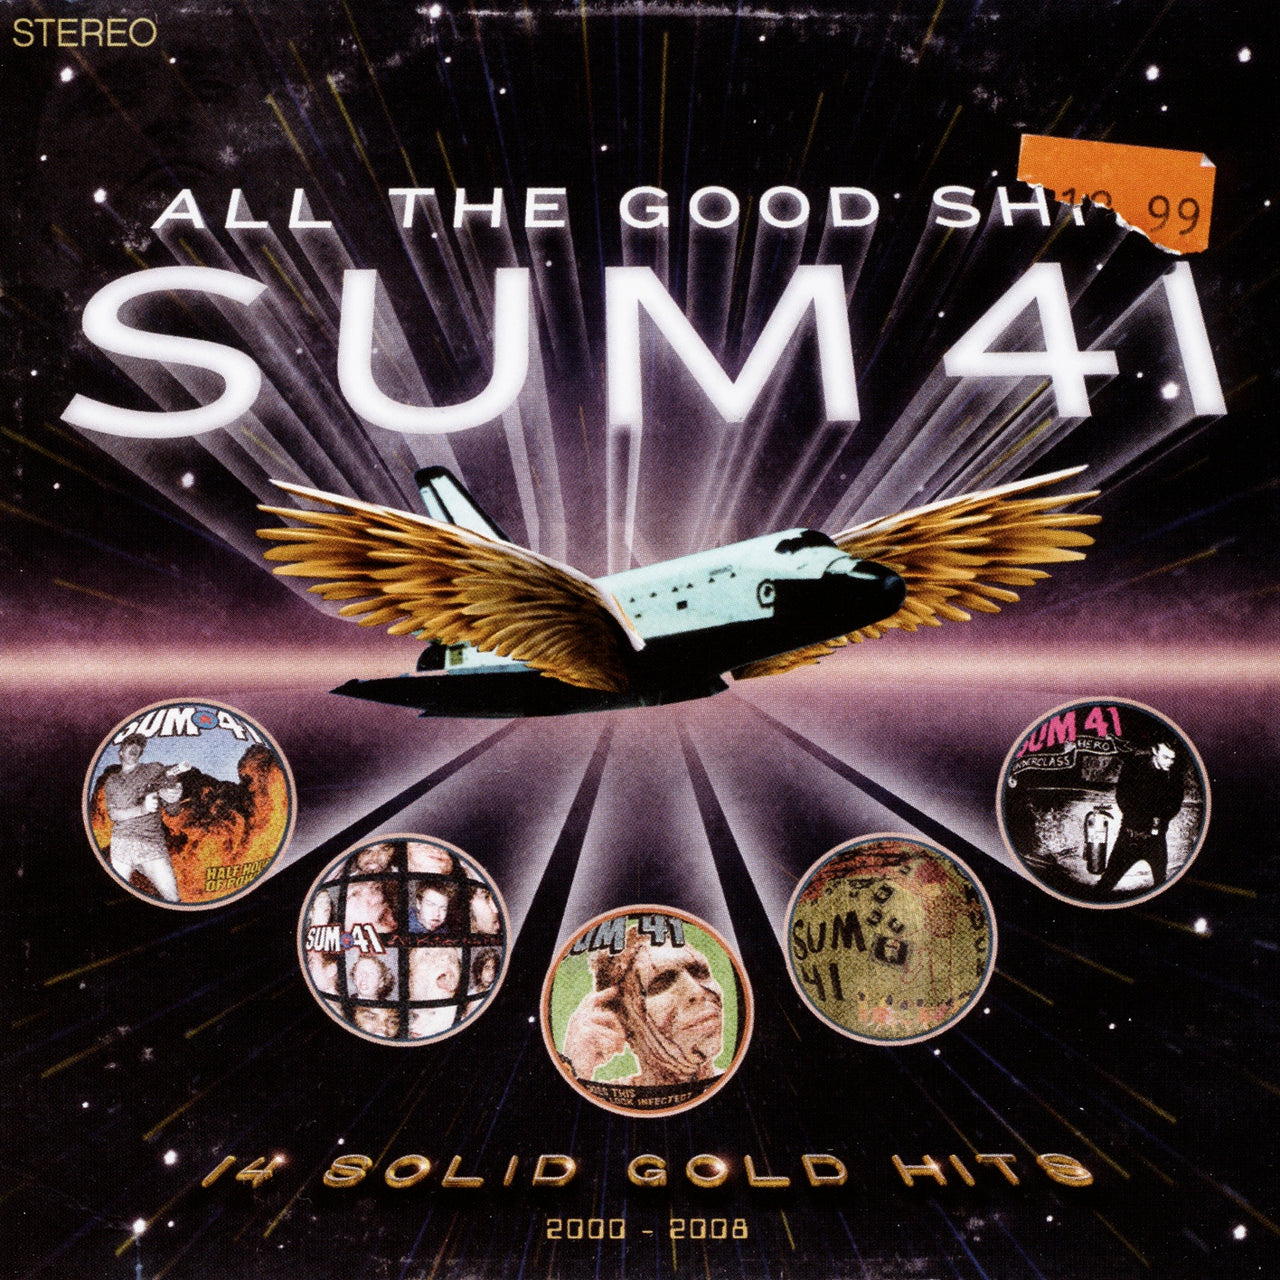 Sum 41 : All The Good Sh**: 14 Solid Gold Hits 200